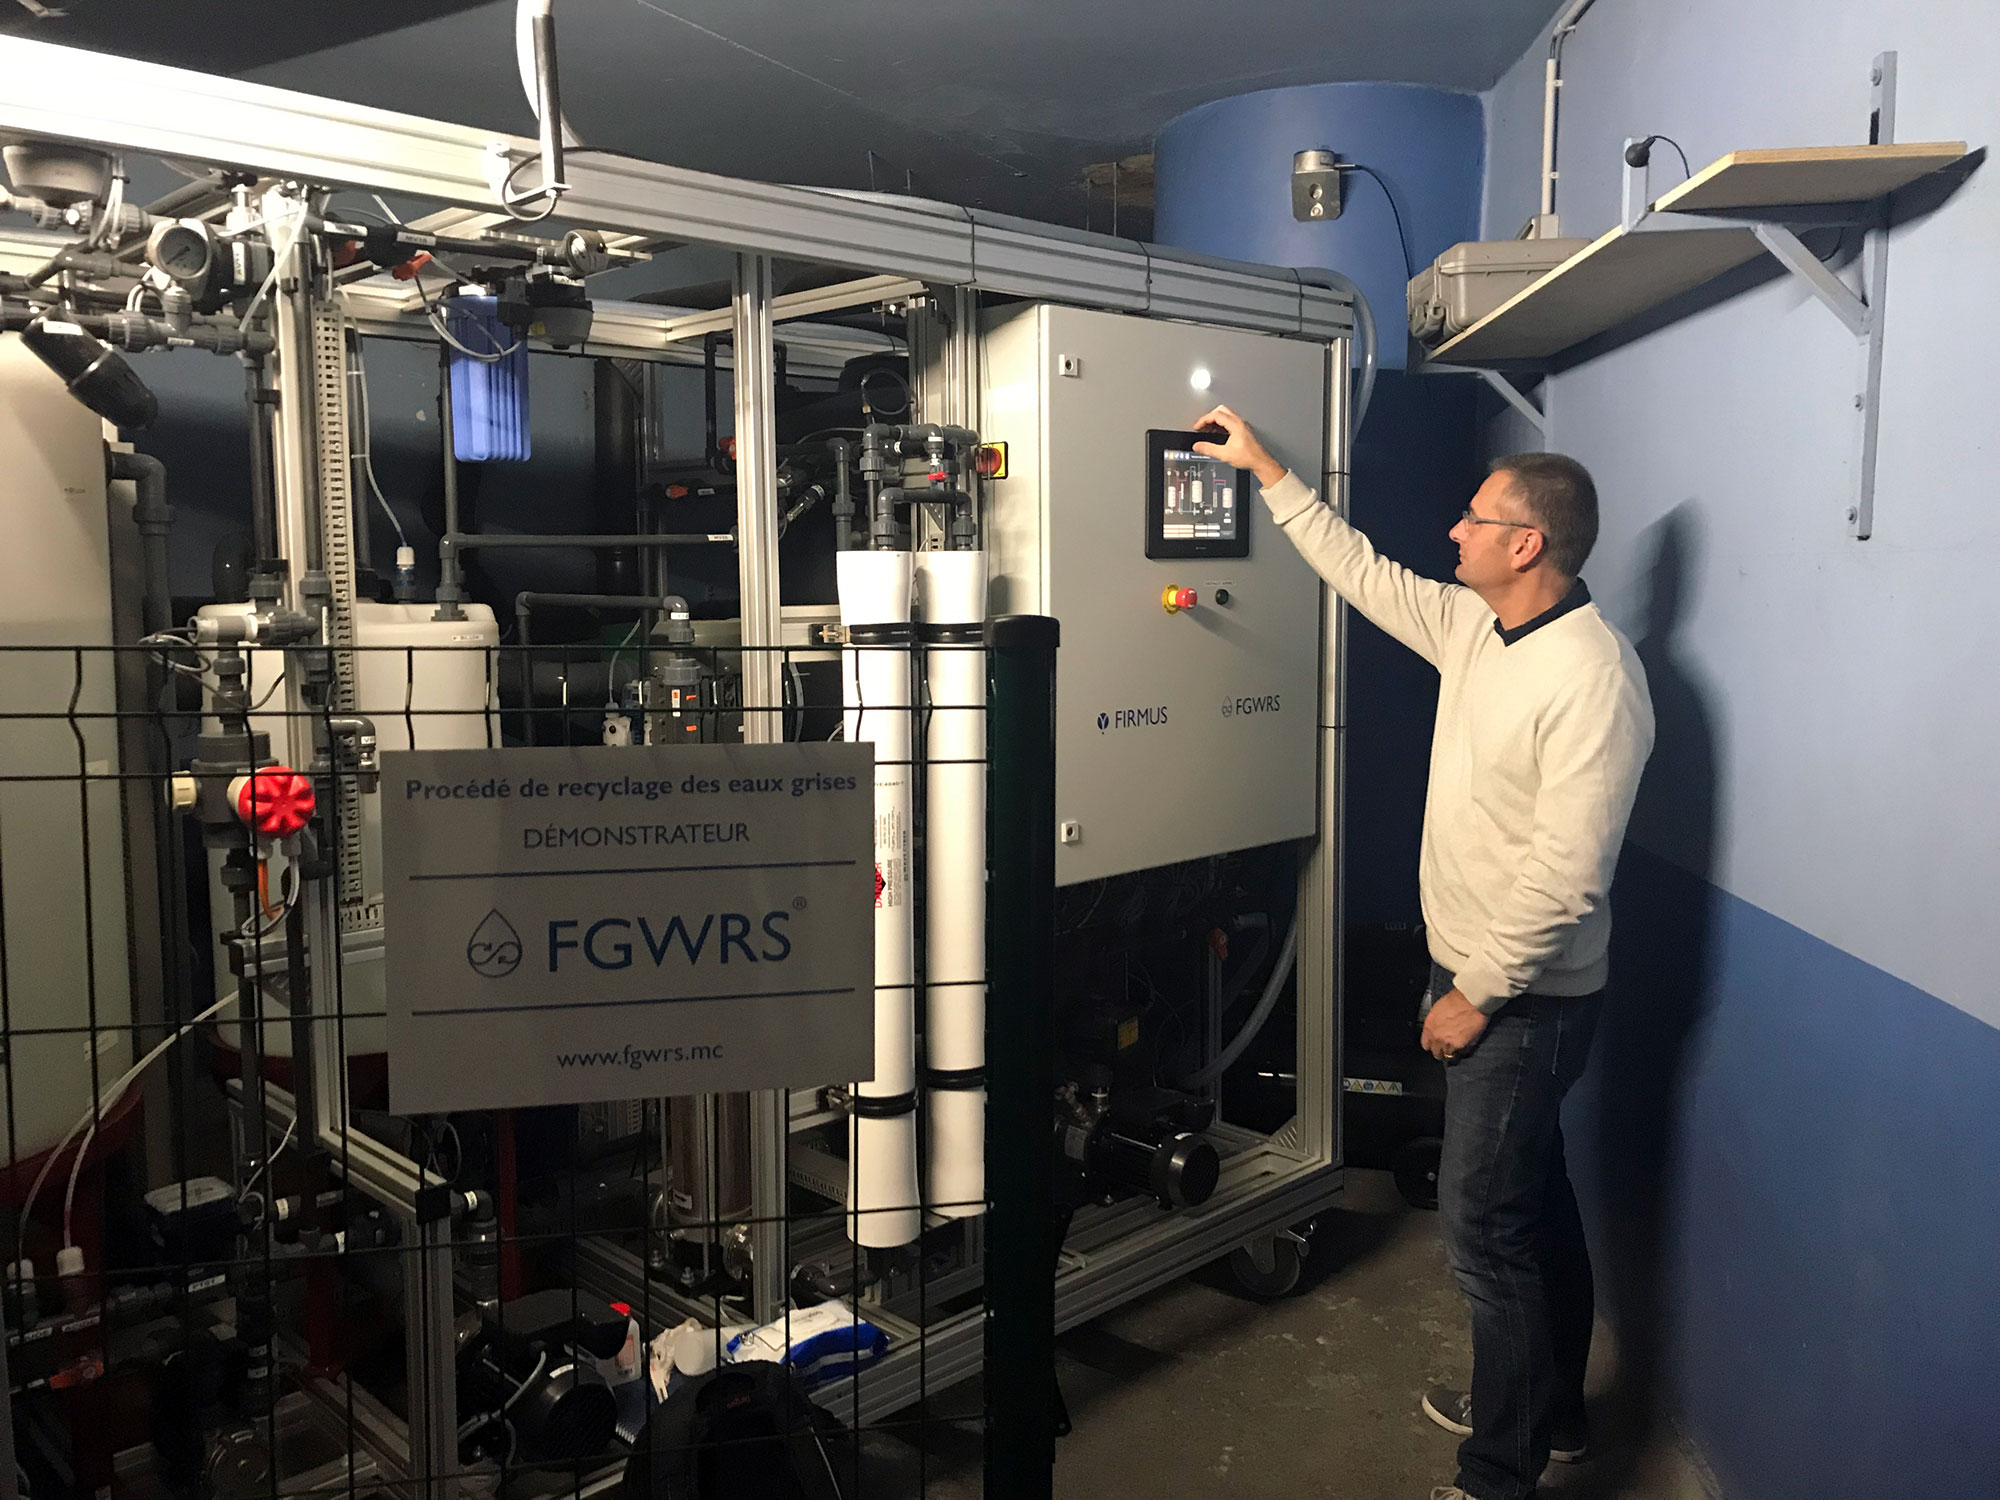 FGWRS Process Demonstrator: FAIRMONT MONTE CARLO